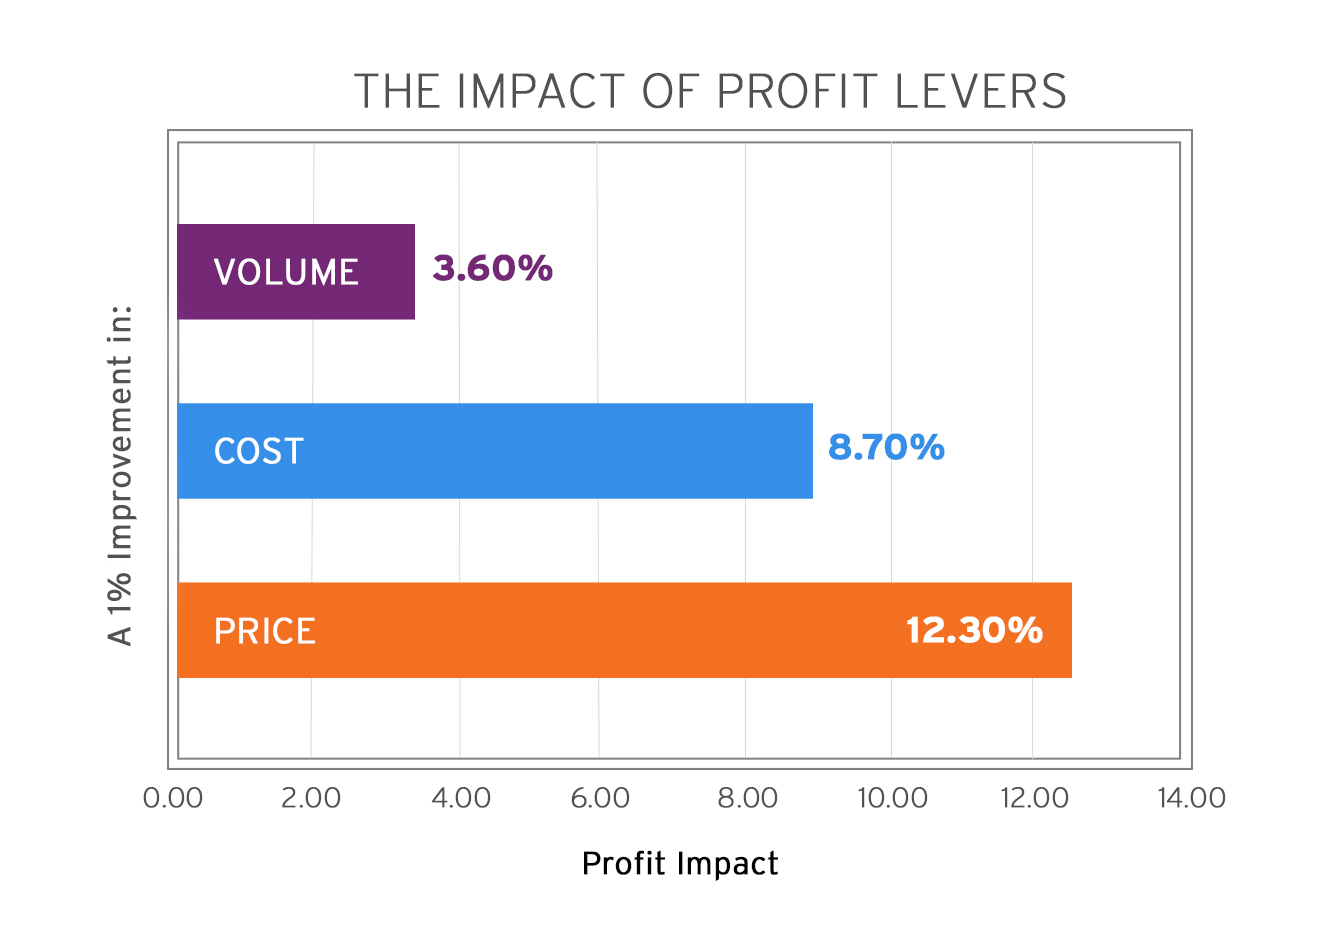 The Impact of Profit Levers